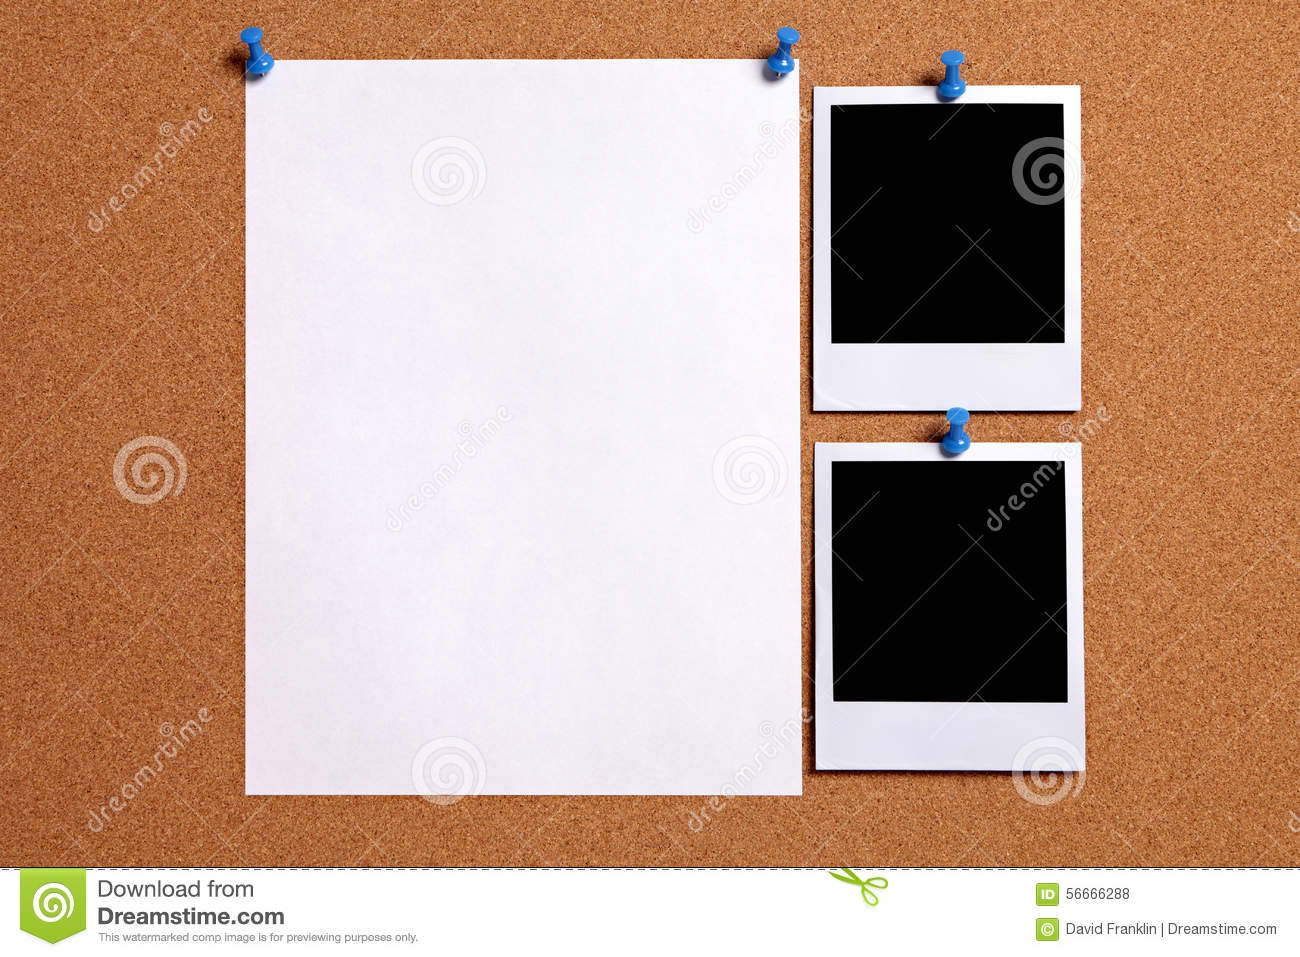 Two polaroid style blank photo frames with paper poster pinned to cork notice board, copy space